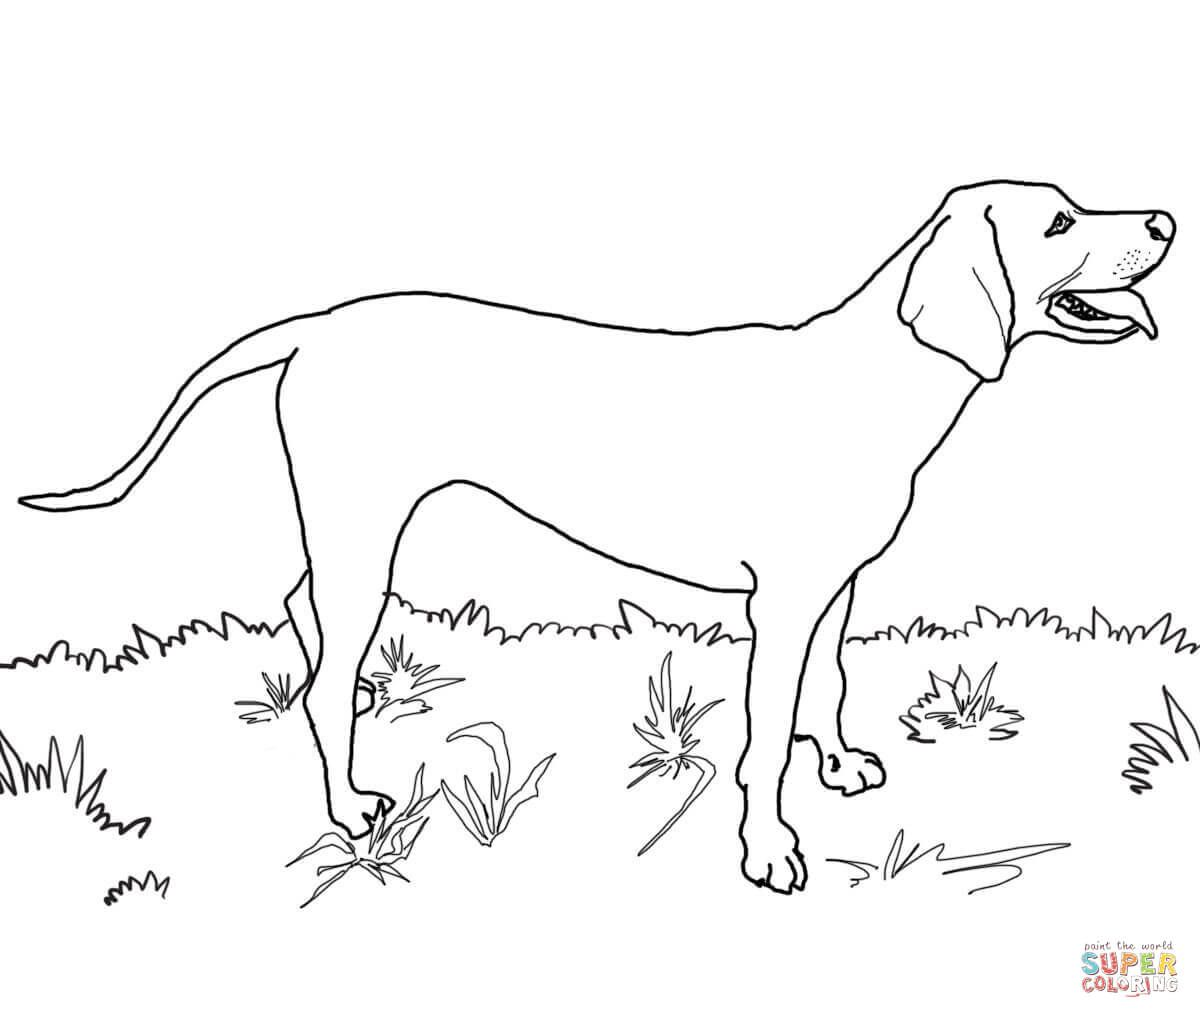 redbone coonhound super coloring